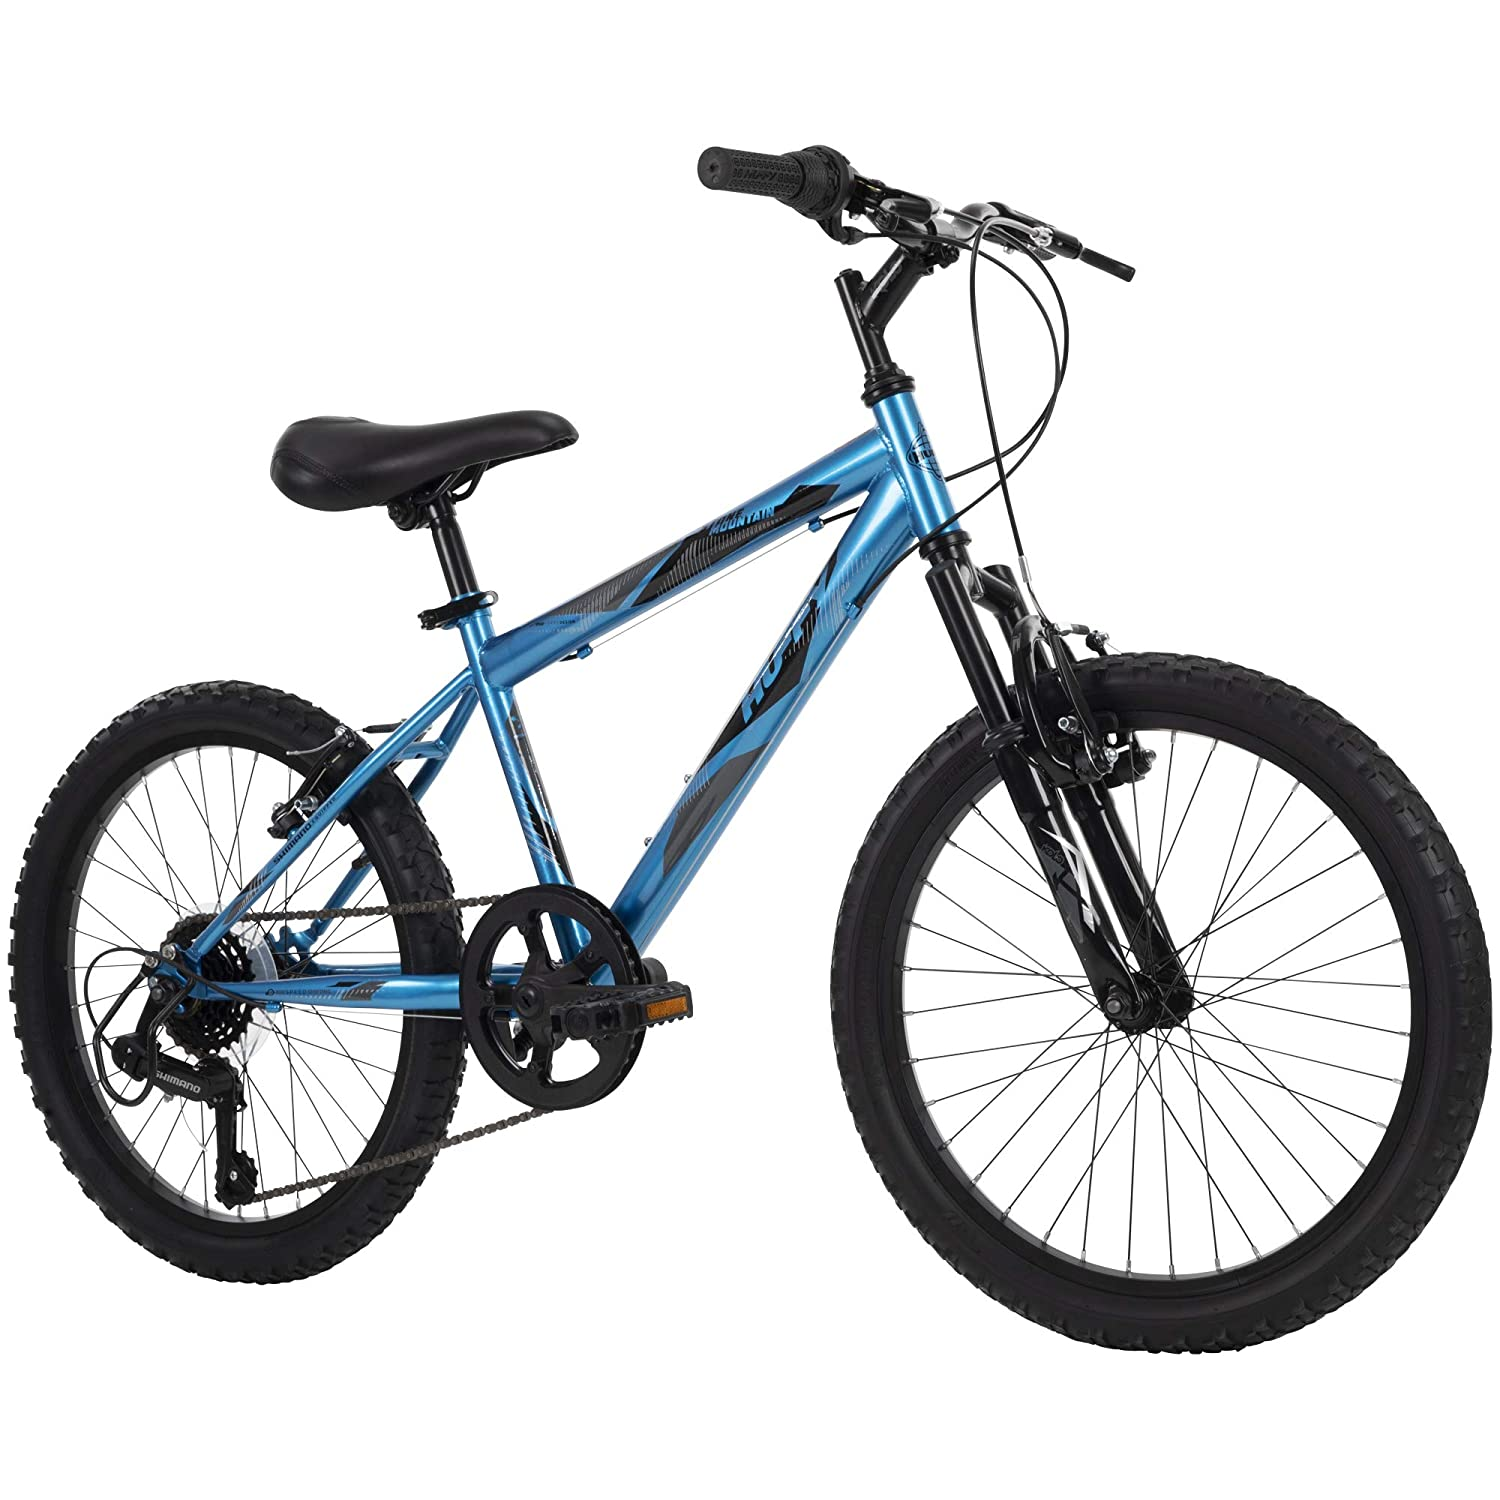 Top 9 Best Kid Mountain Bike (2020 Reviews & Buying Guide) 3